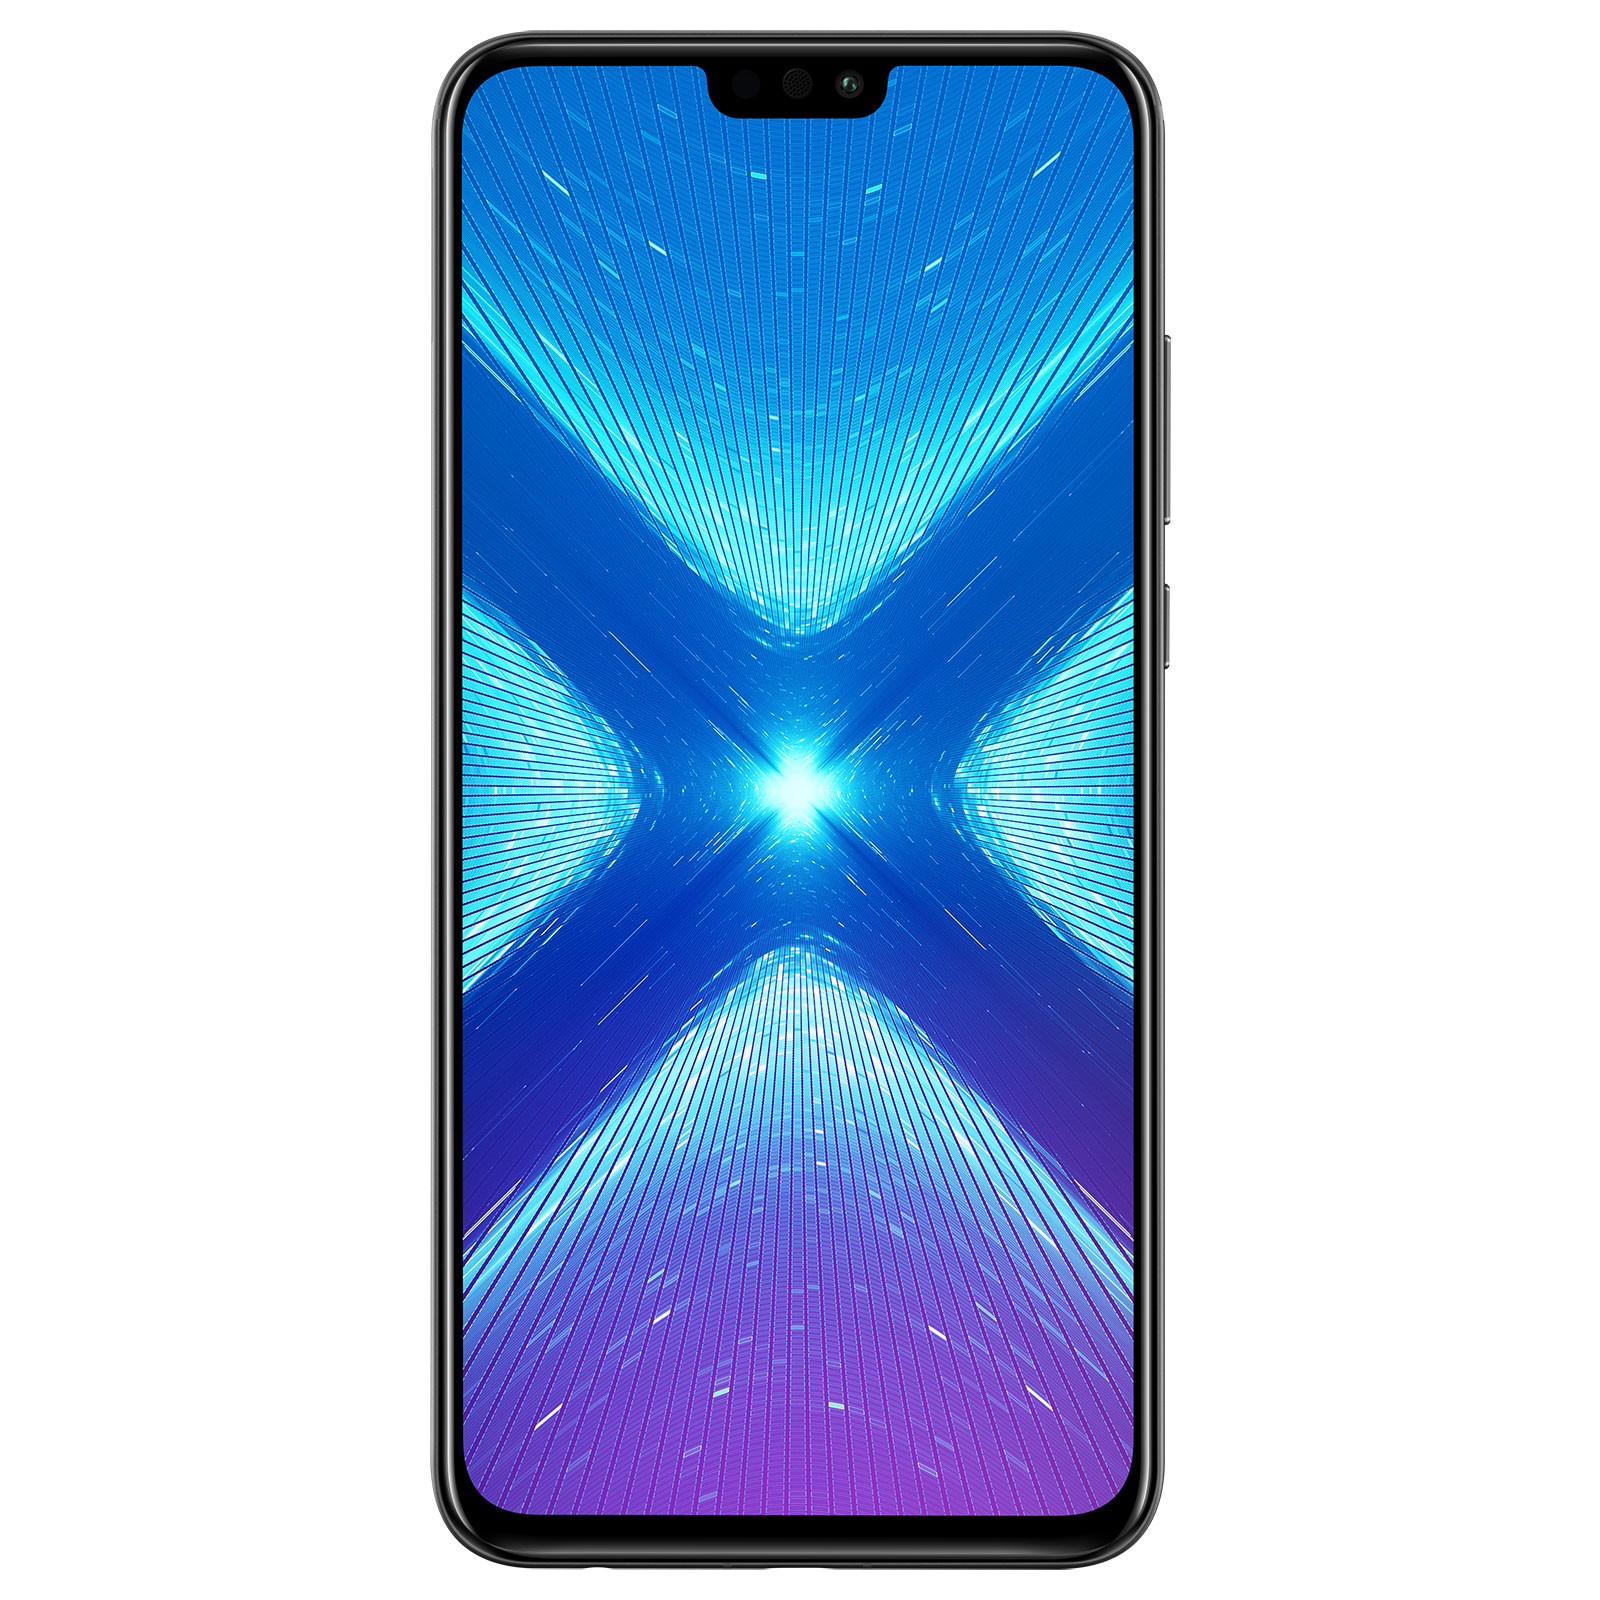 "Mobile & smartphone Honor 8X Noir (4 Go / 64 Go) Smartphone 4G-LTE Advanced Dual SIM - Kirin 710 8-Core 2.2 Ghz - RAM 4 Go - Ecran tactile 6.5"" 1080 x 2340 - 64 Go - Bluetooth 4.2 - 3750 mAh - Android 8.1"